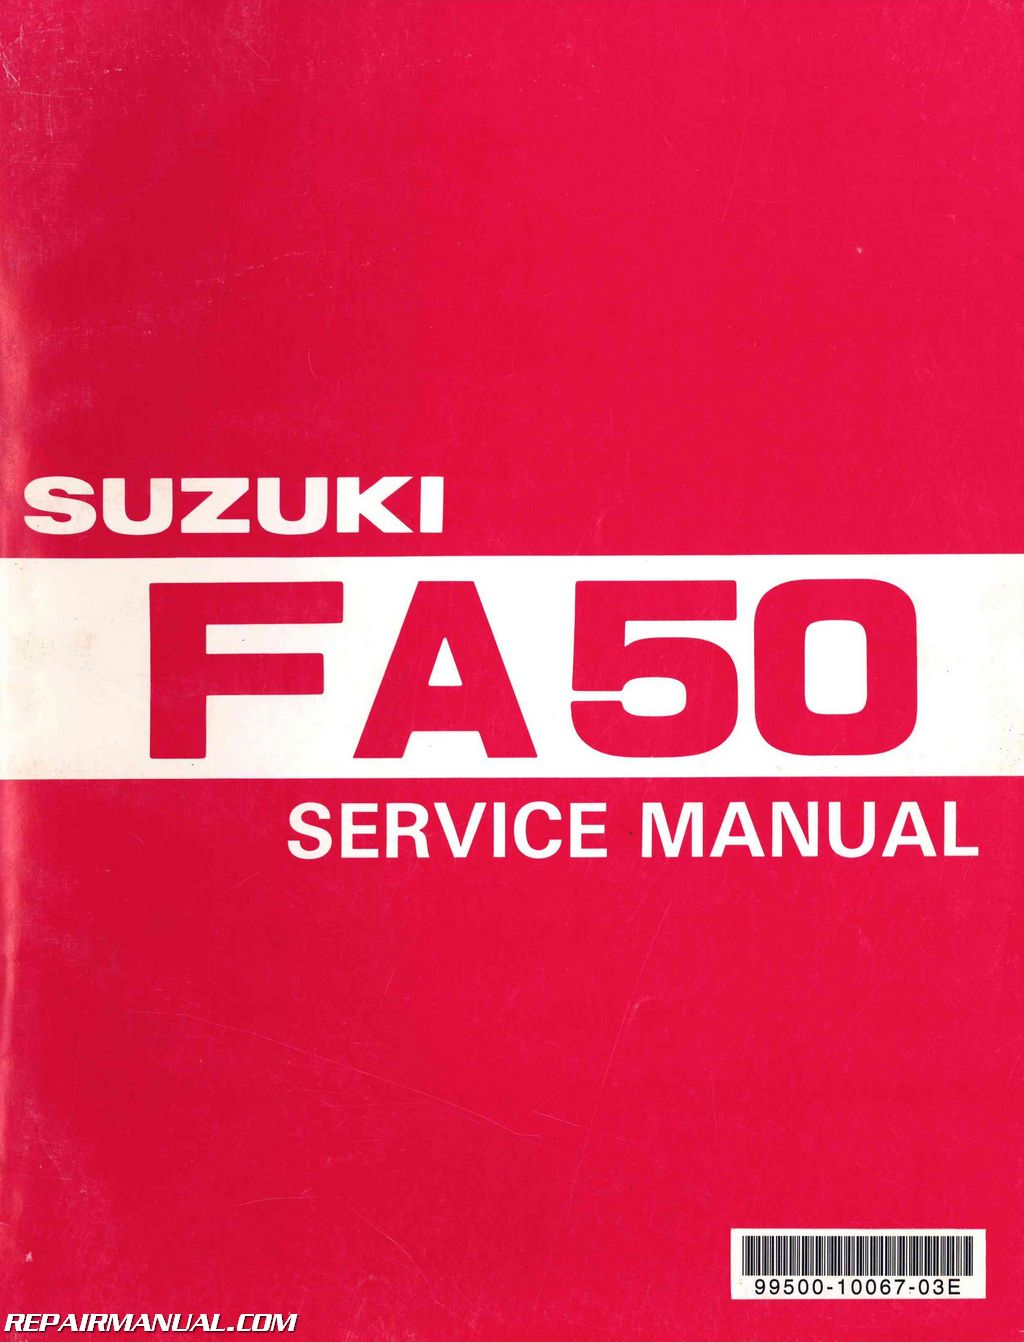 hight resolution of 1980 1991 suzuki fa50 moped service manual jpg